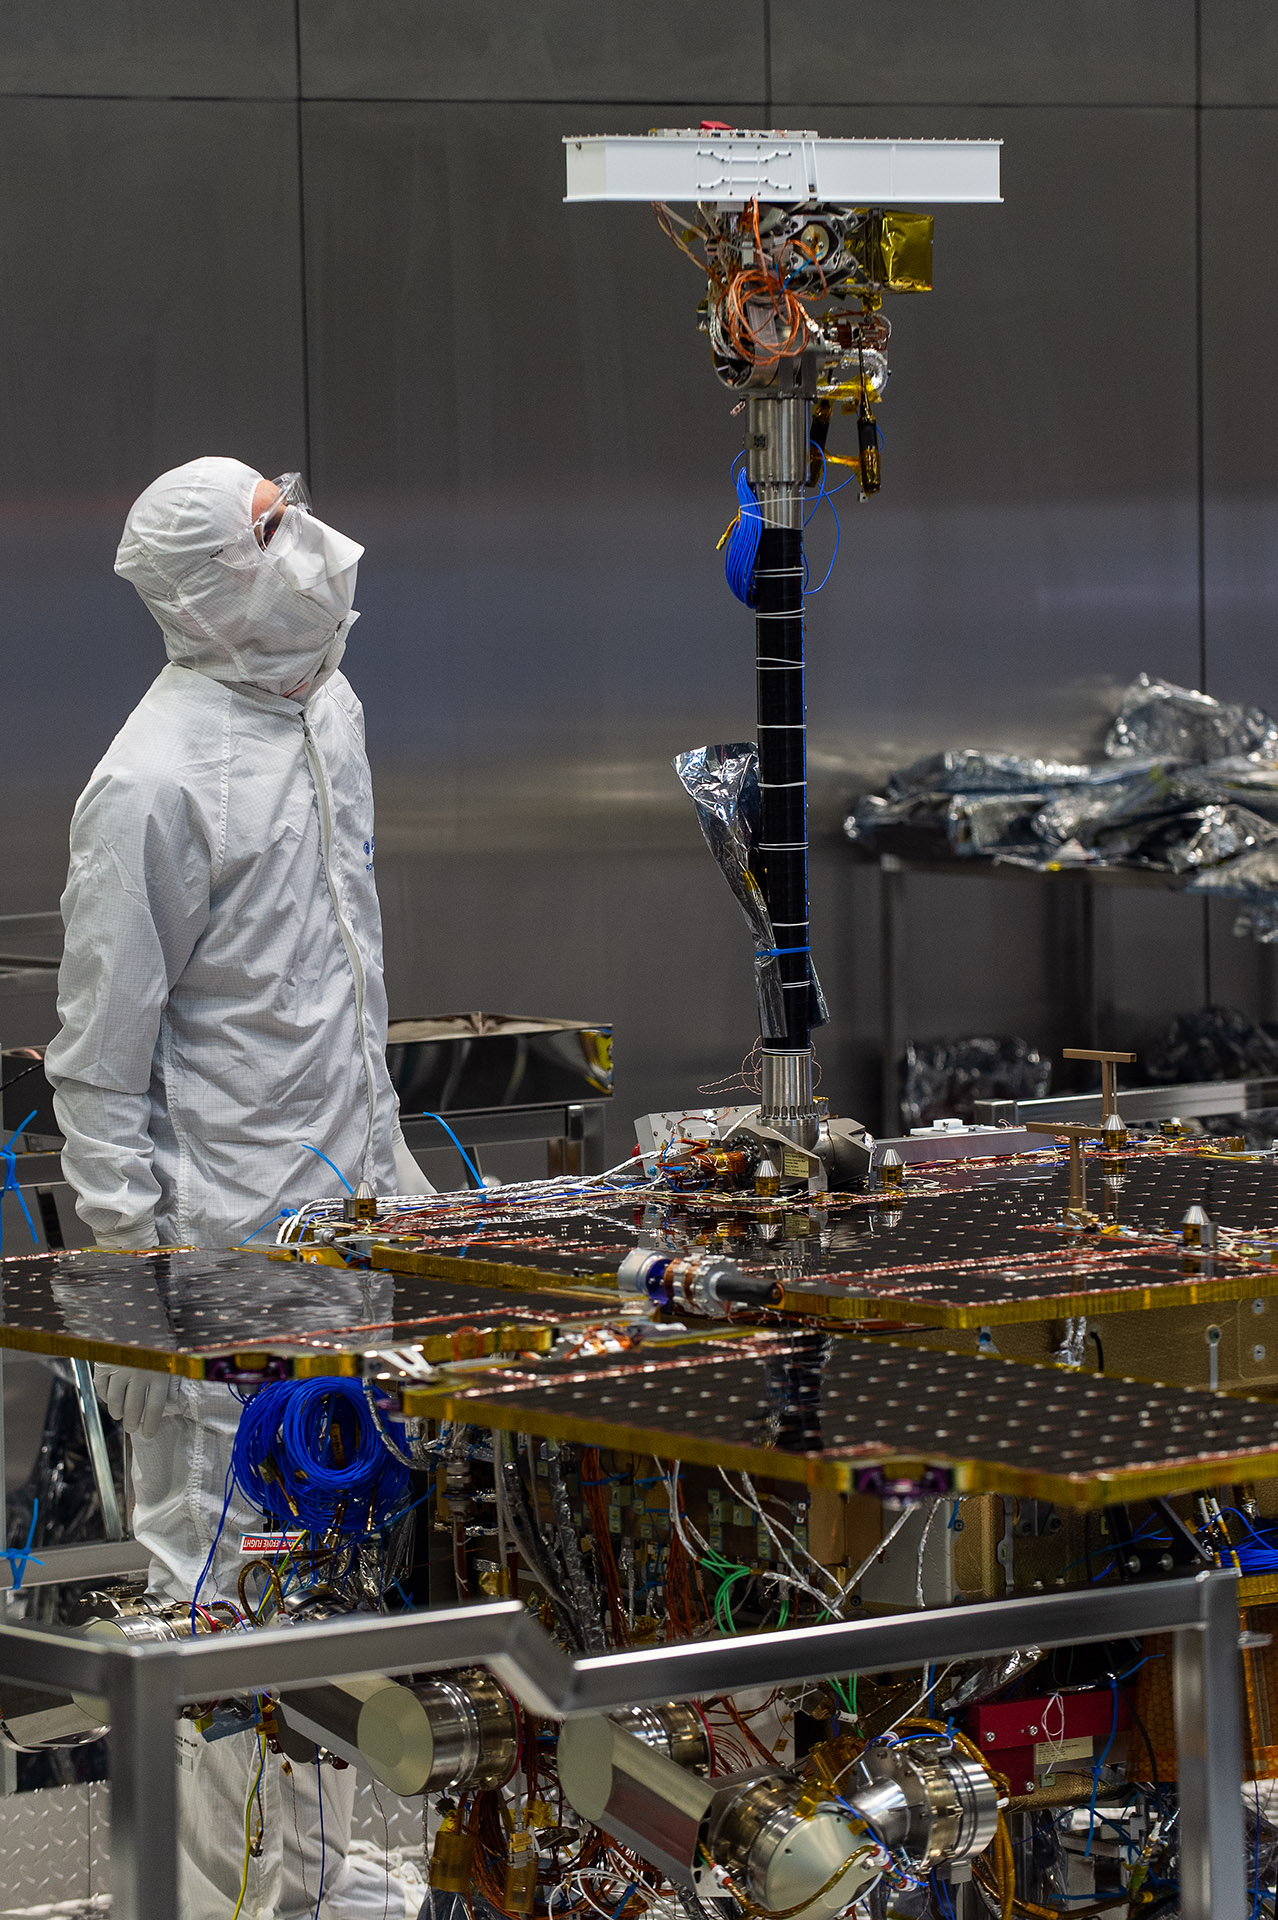 http://www.esa.int/var/esa/storage/images/esa_multimedia/images/2019/08/pancam_mast_fitted_to_exomars_rover/19666658-2-eng-GB/PanCam_mast_fitted_to_ExoMars_rover.jpg